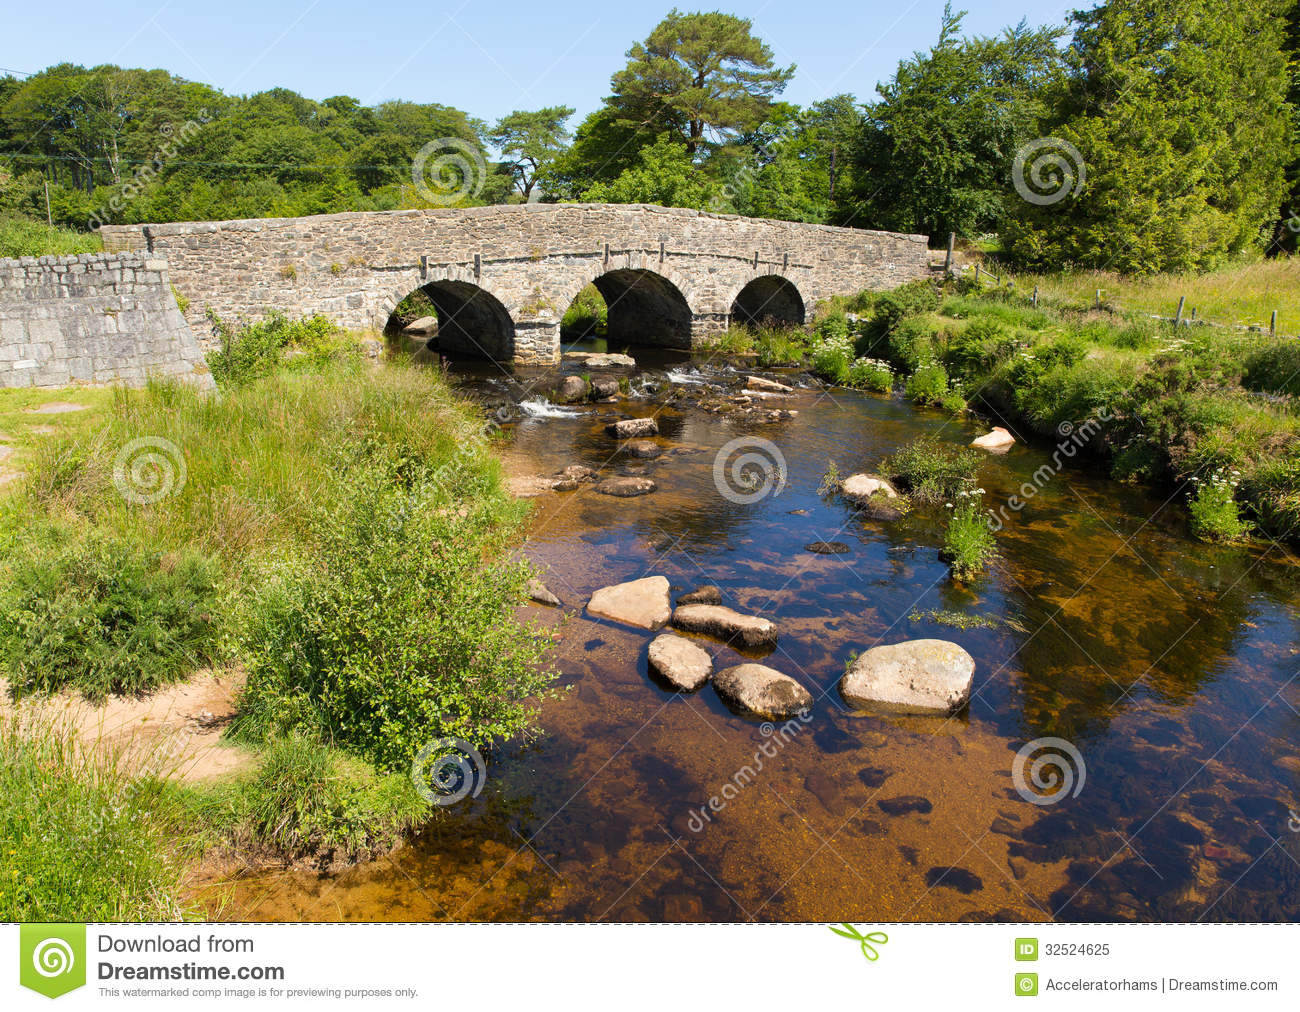 Postbridge clapper bridge Dartmoor National Park Devon England UK